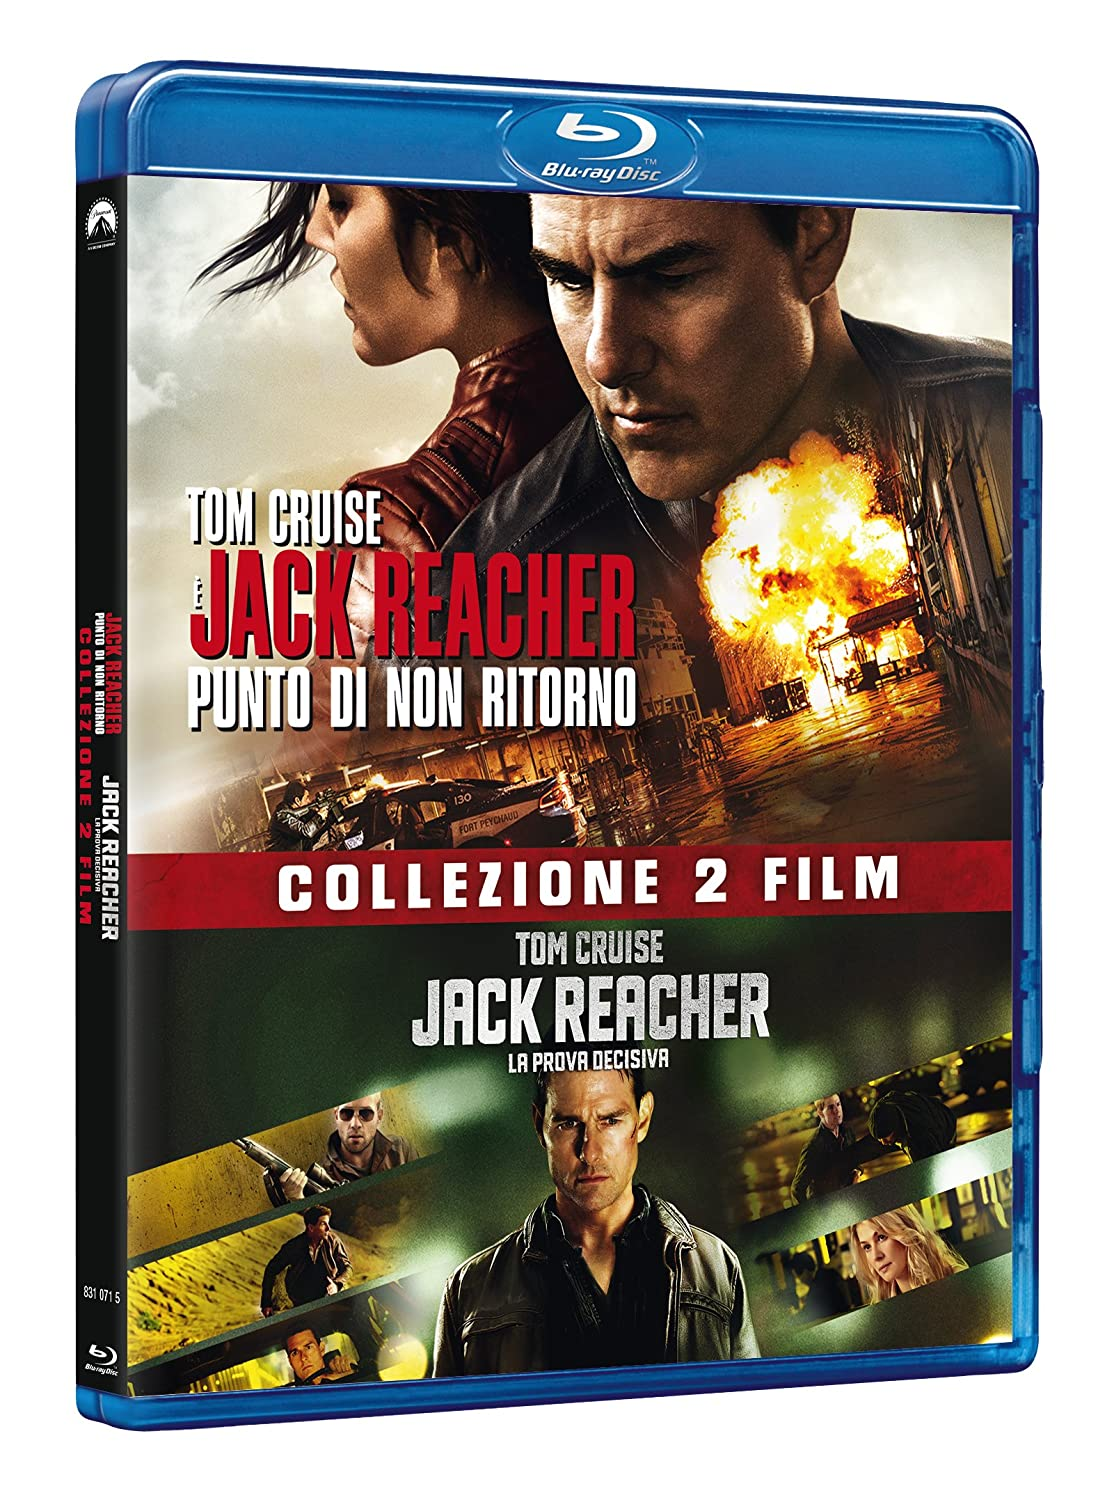 Jack Reacher Collection 1&2 2 Blu-Ray Italia Blu-ray: Amazon.es: Tom Cruise, Robert Duvall, Werner Herzog, Richard Jenkins, Joe Kraemer, Rosamund Pike, Cobie Smulders, Christopher Mcquarrie, Edward Zwick, Tom Cruise, Robert Duvall: Cine